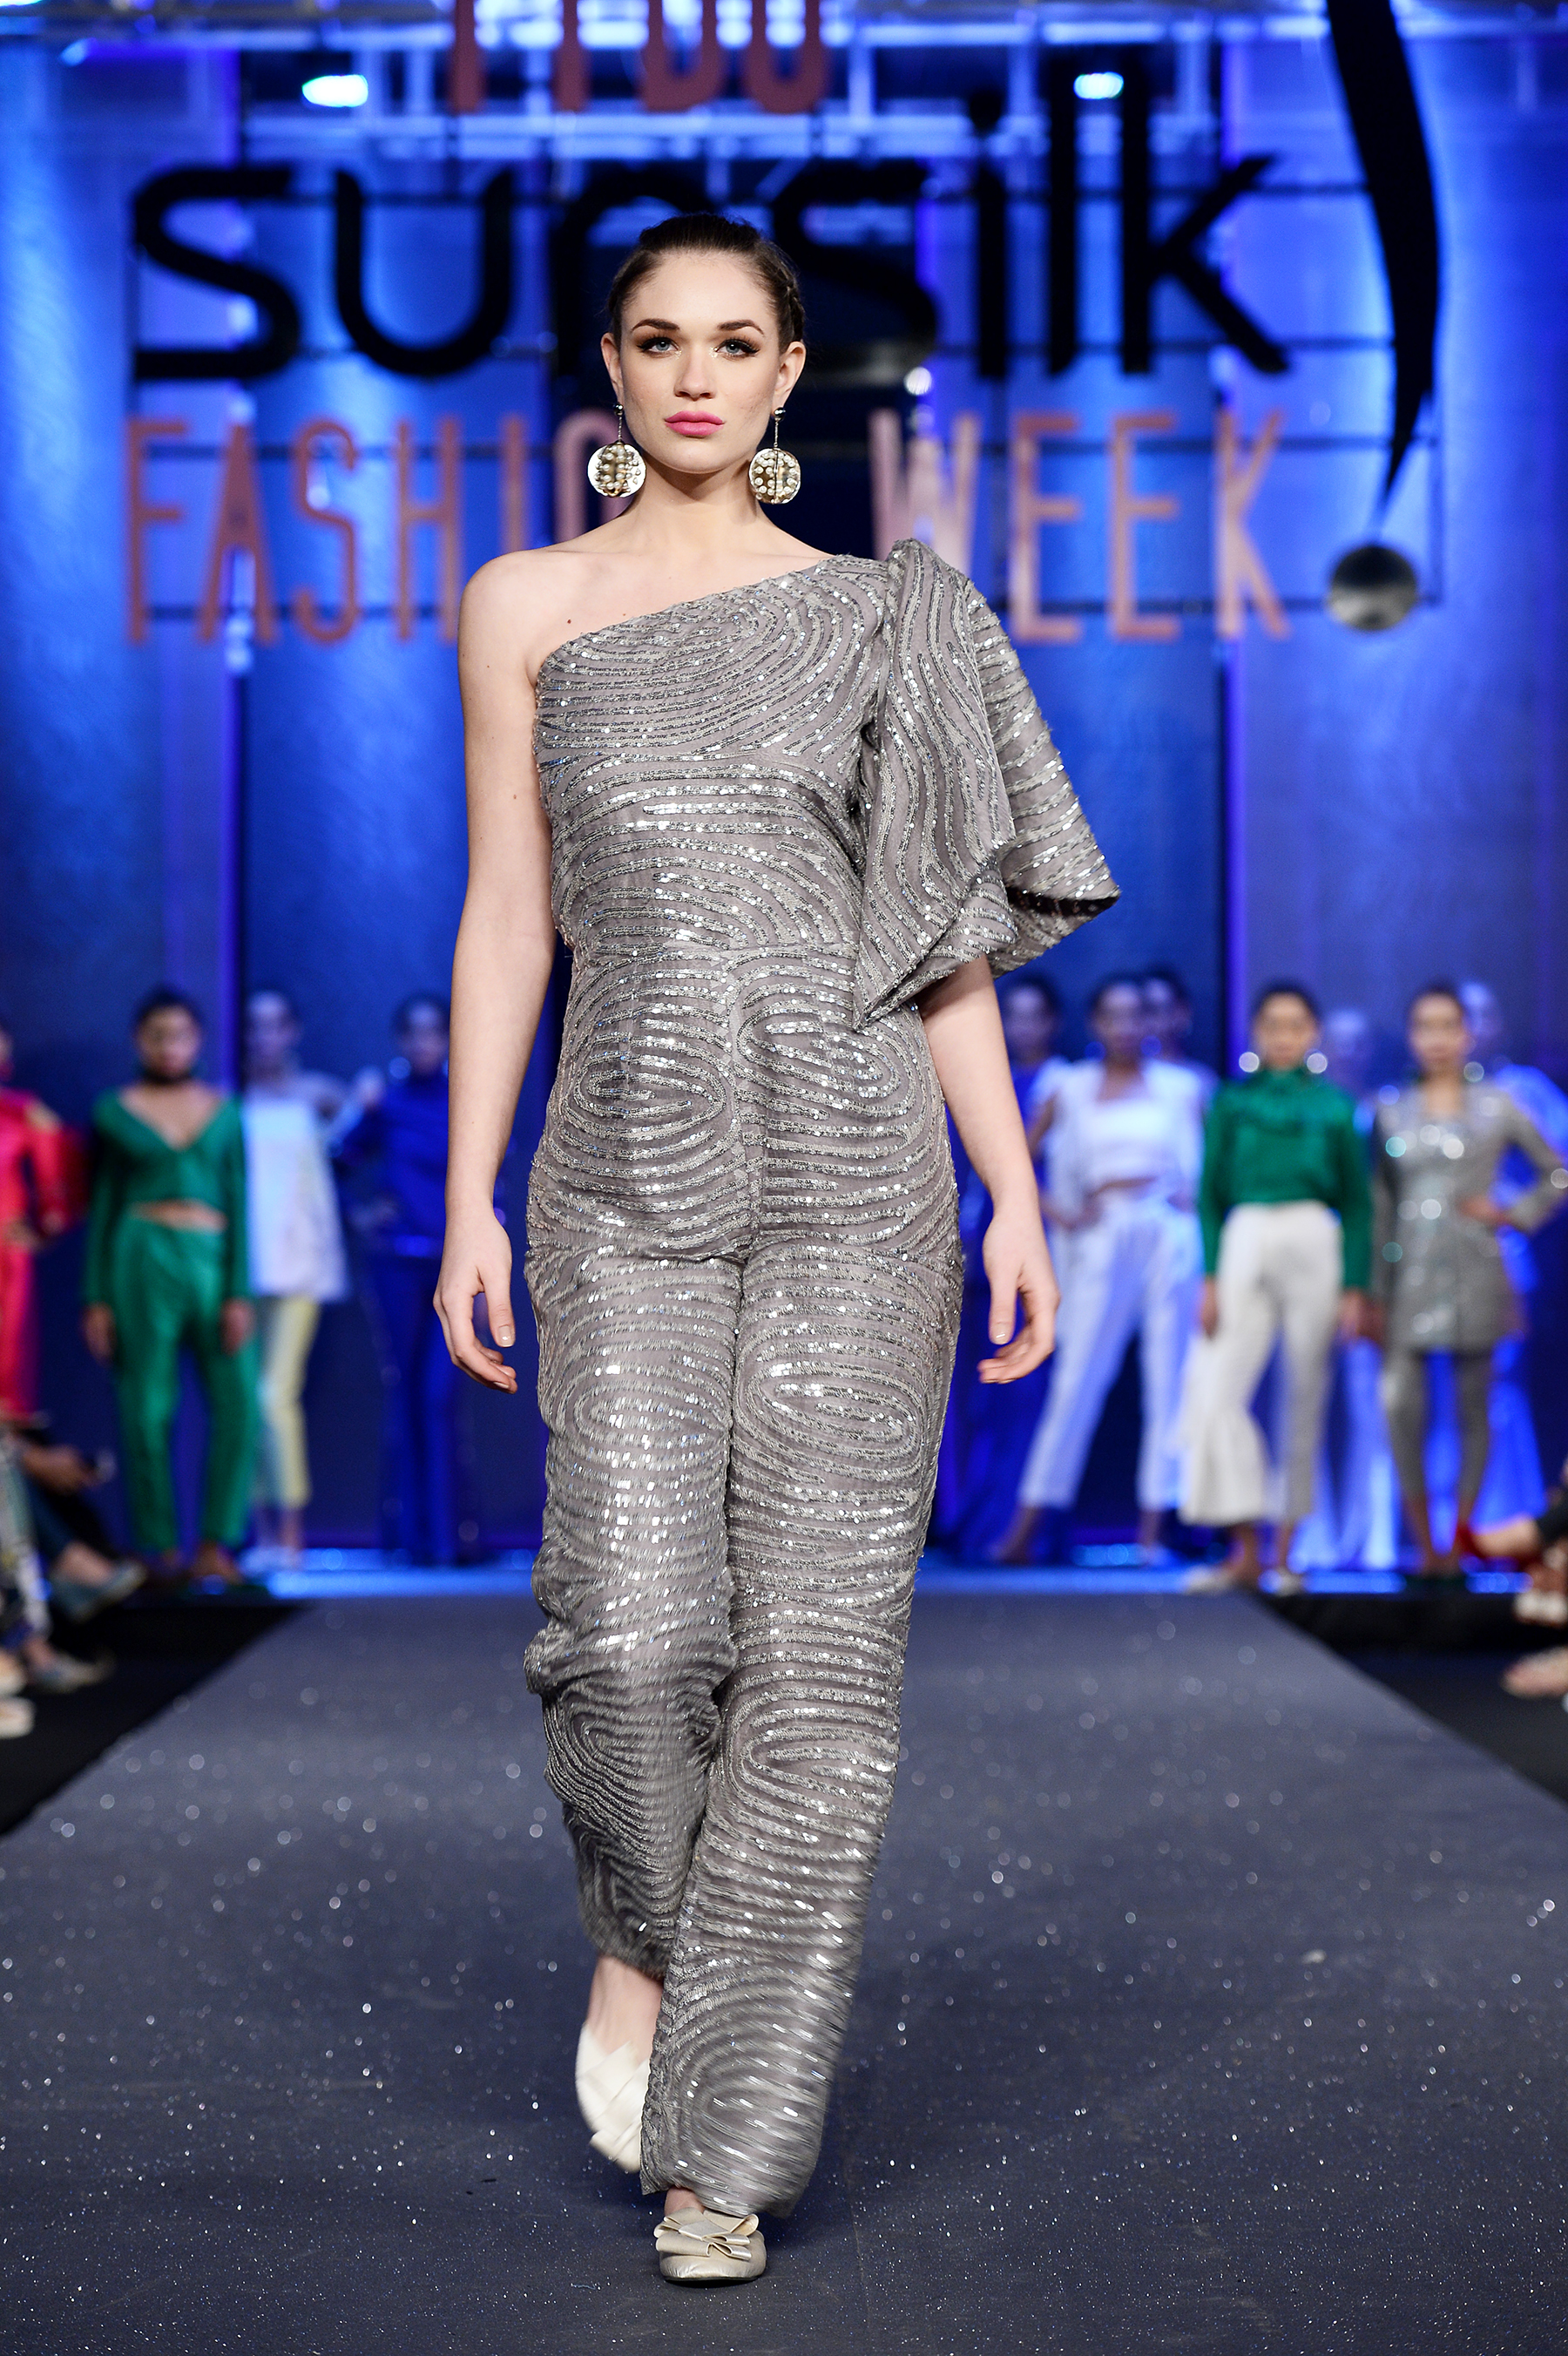 Cross Stitch - PFDC Sunsilk Fashion Week 2017, Photography: Faisal Farooqui and his team at Dragonfly